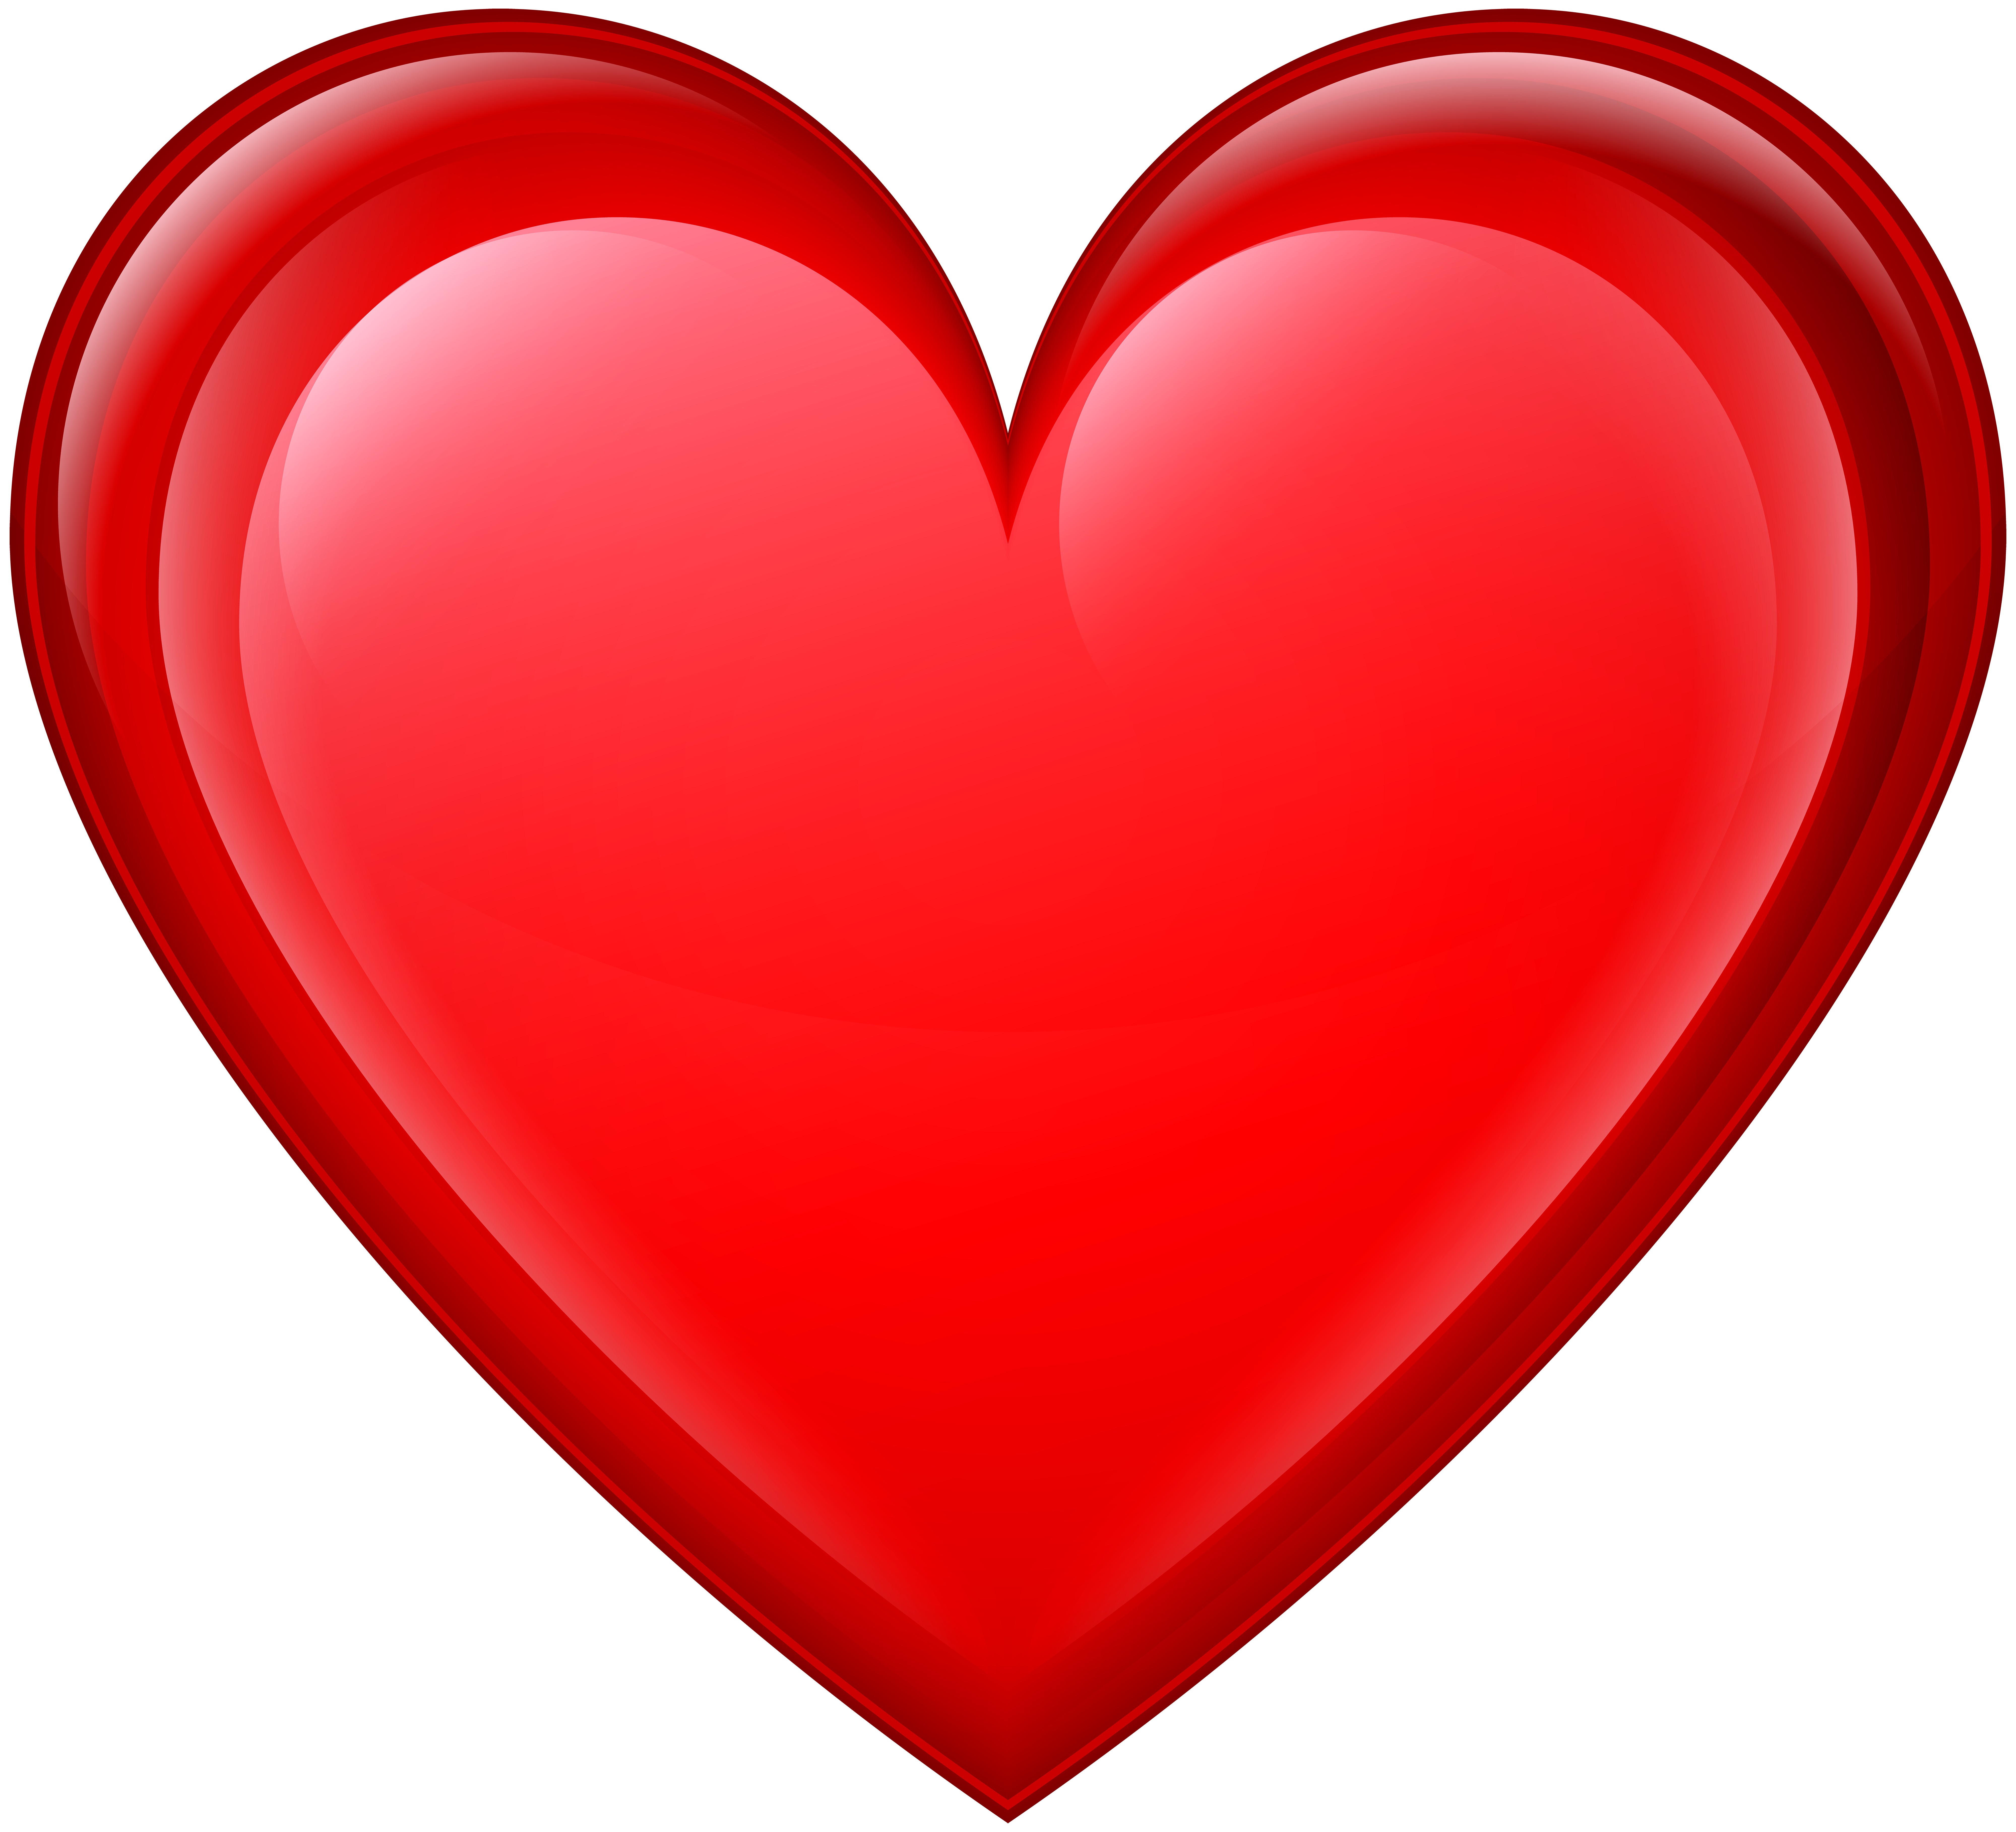 Heart Red PNG Transparent Clip Art Image